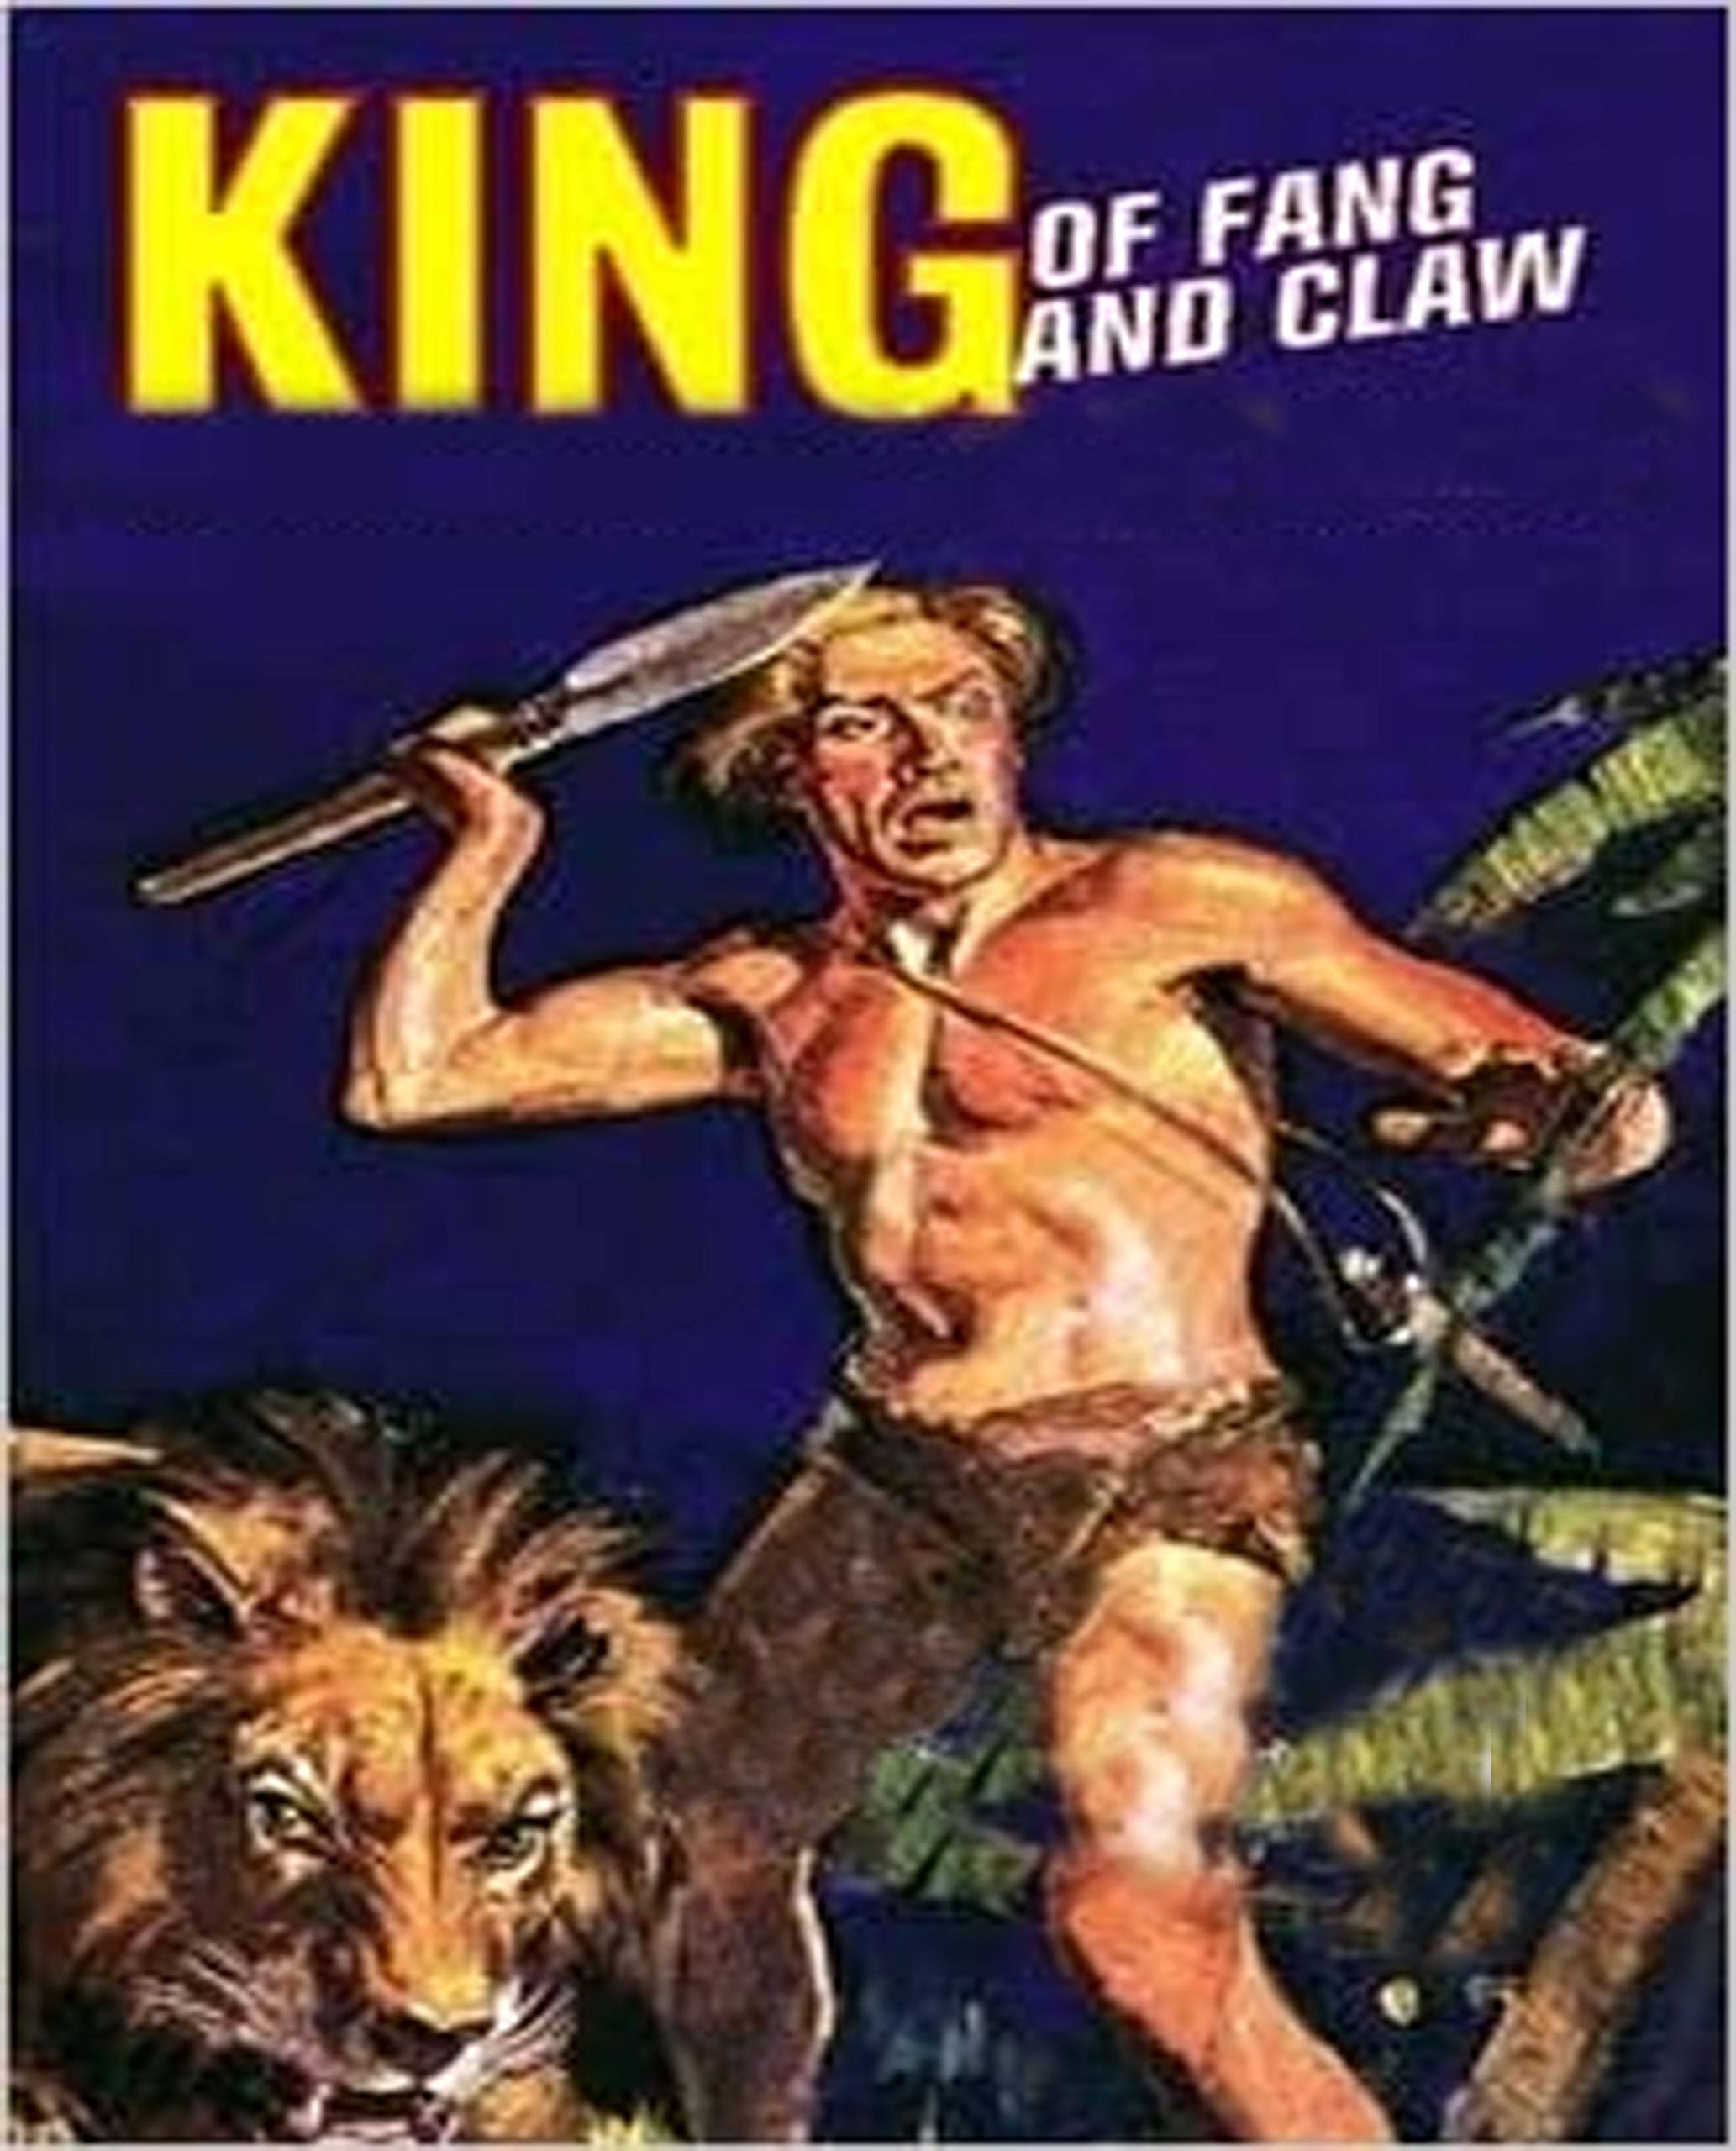 Illustrated King of Fang and Claw: Literary fiction books